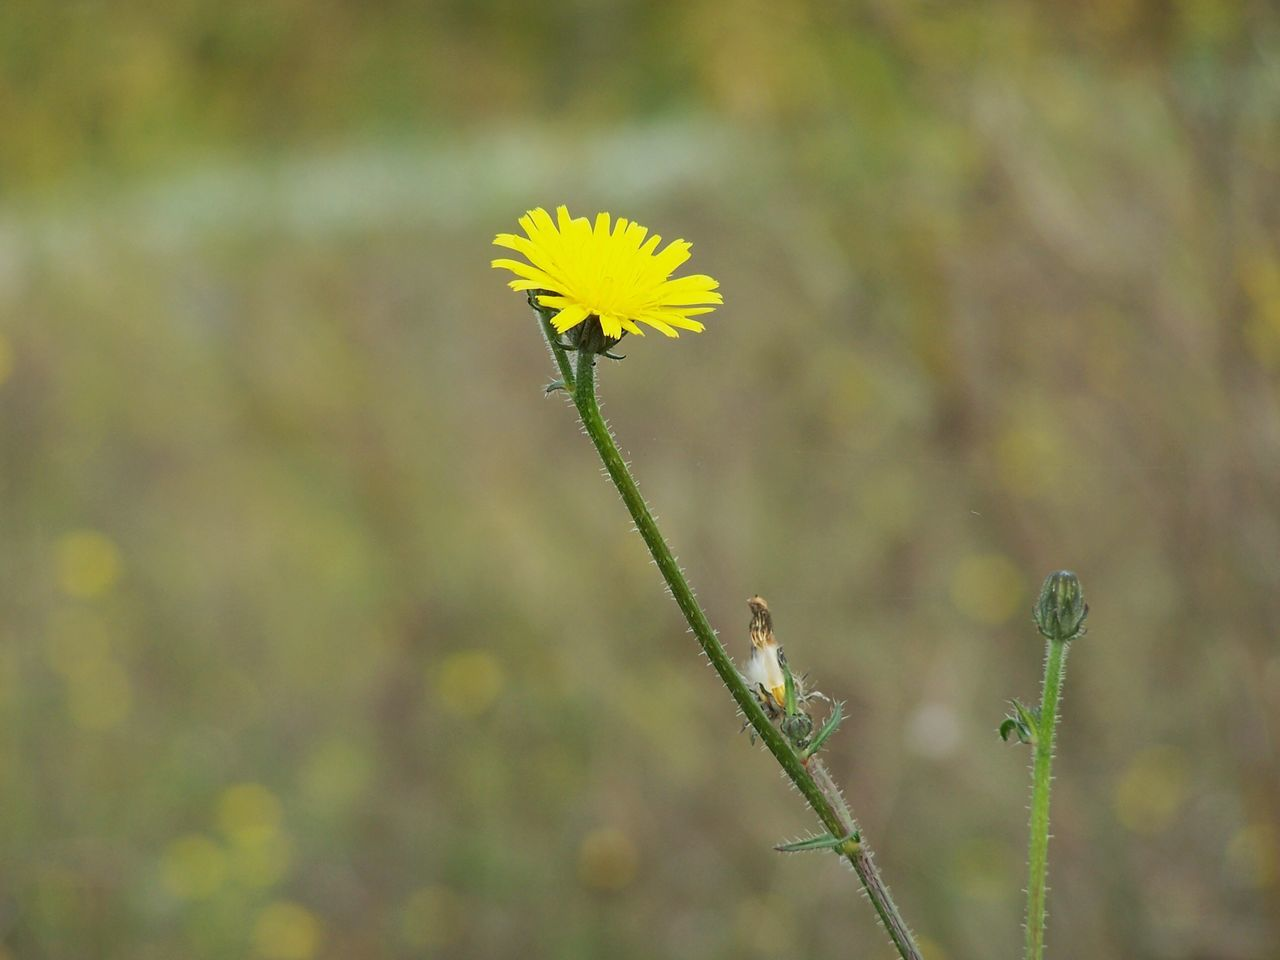 flower, nature, yellow, plant, growth, beauty in nature, fragility, day, one animal, outdoors, focus on foreground, animal themes, petal, close-up, no people, animals in the wild, flower head, freshness, blooming